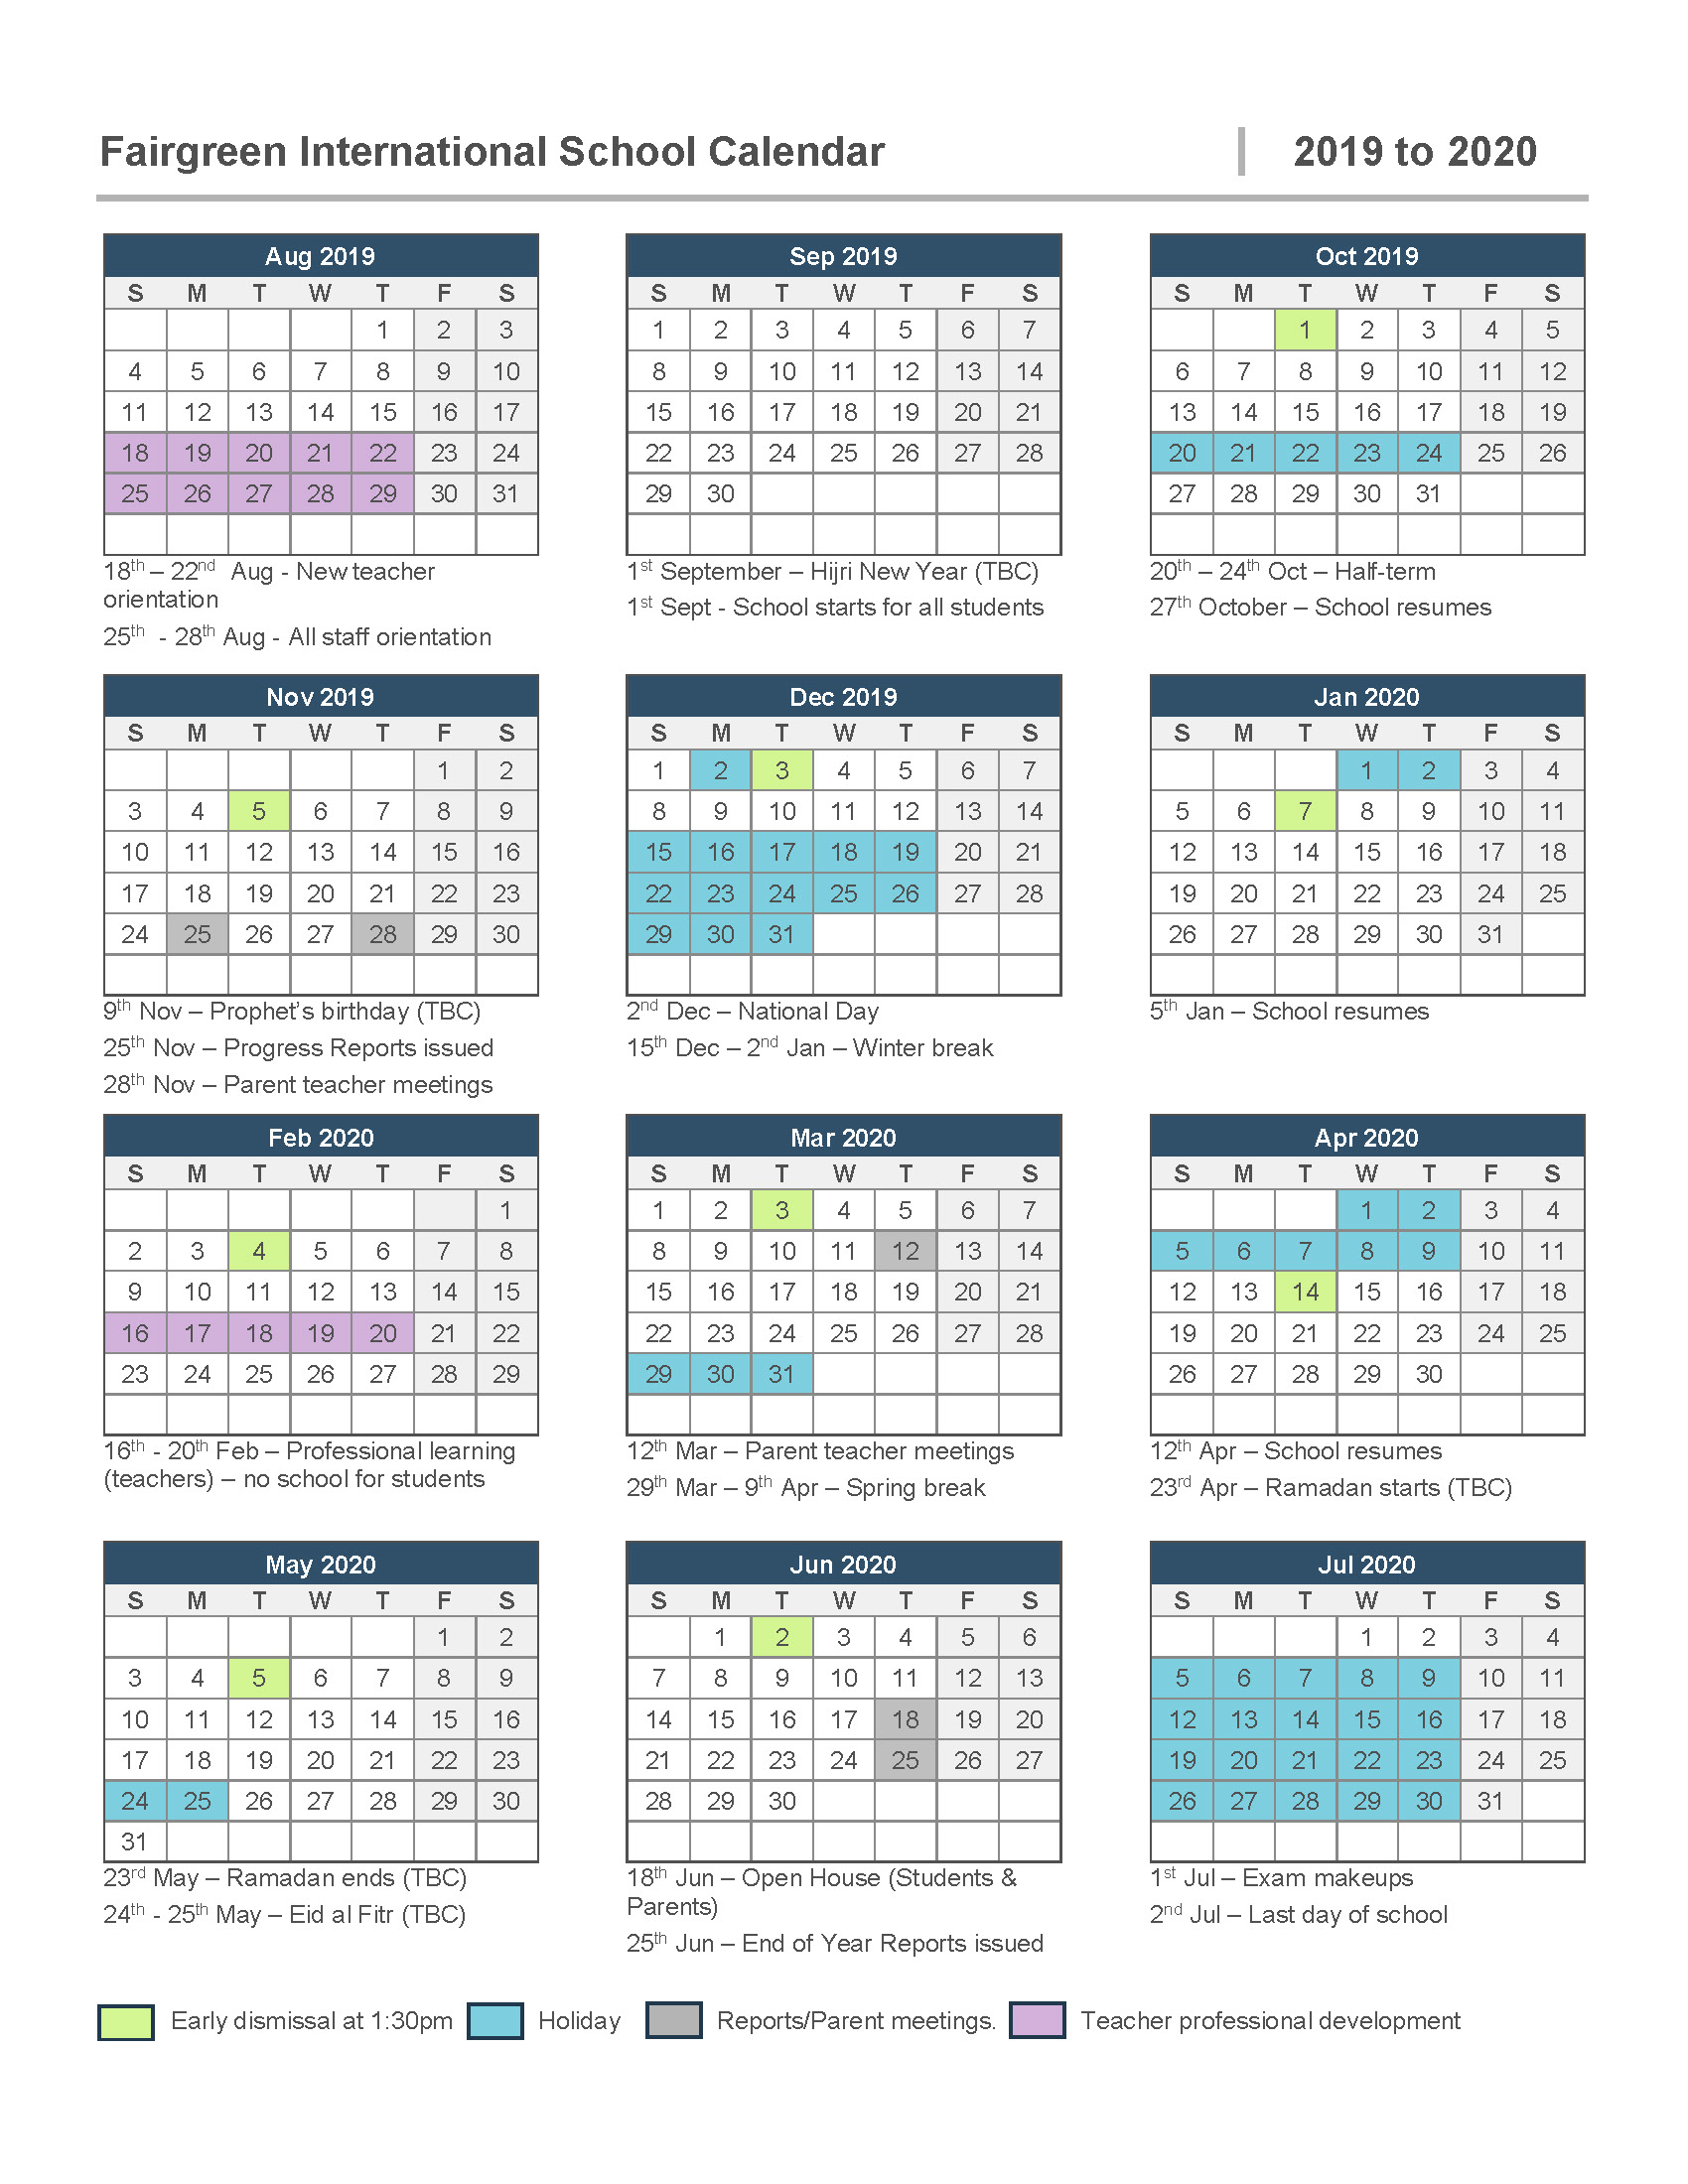 Calendar - Fairgreen International School In Dubai